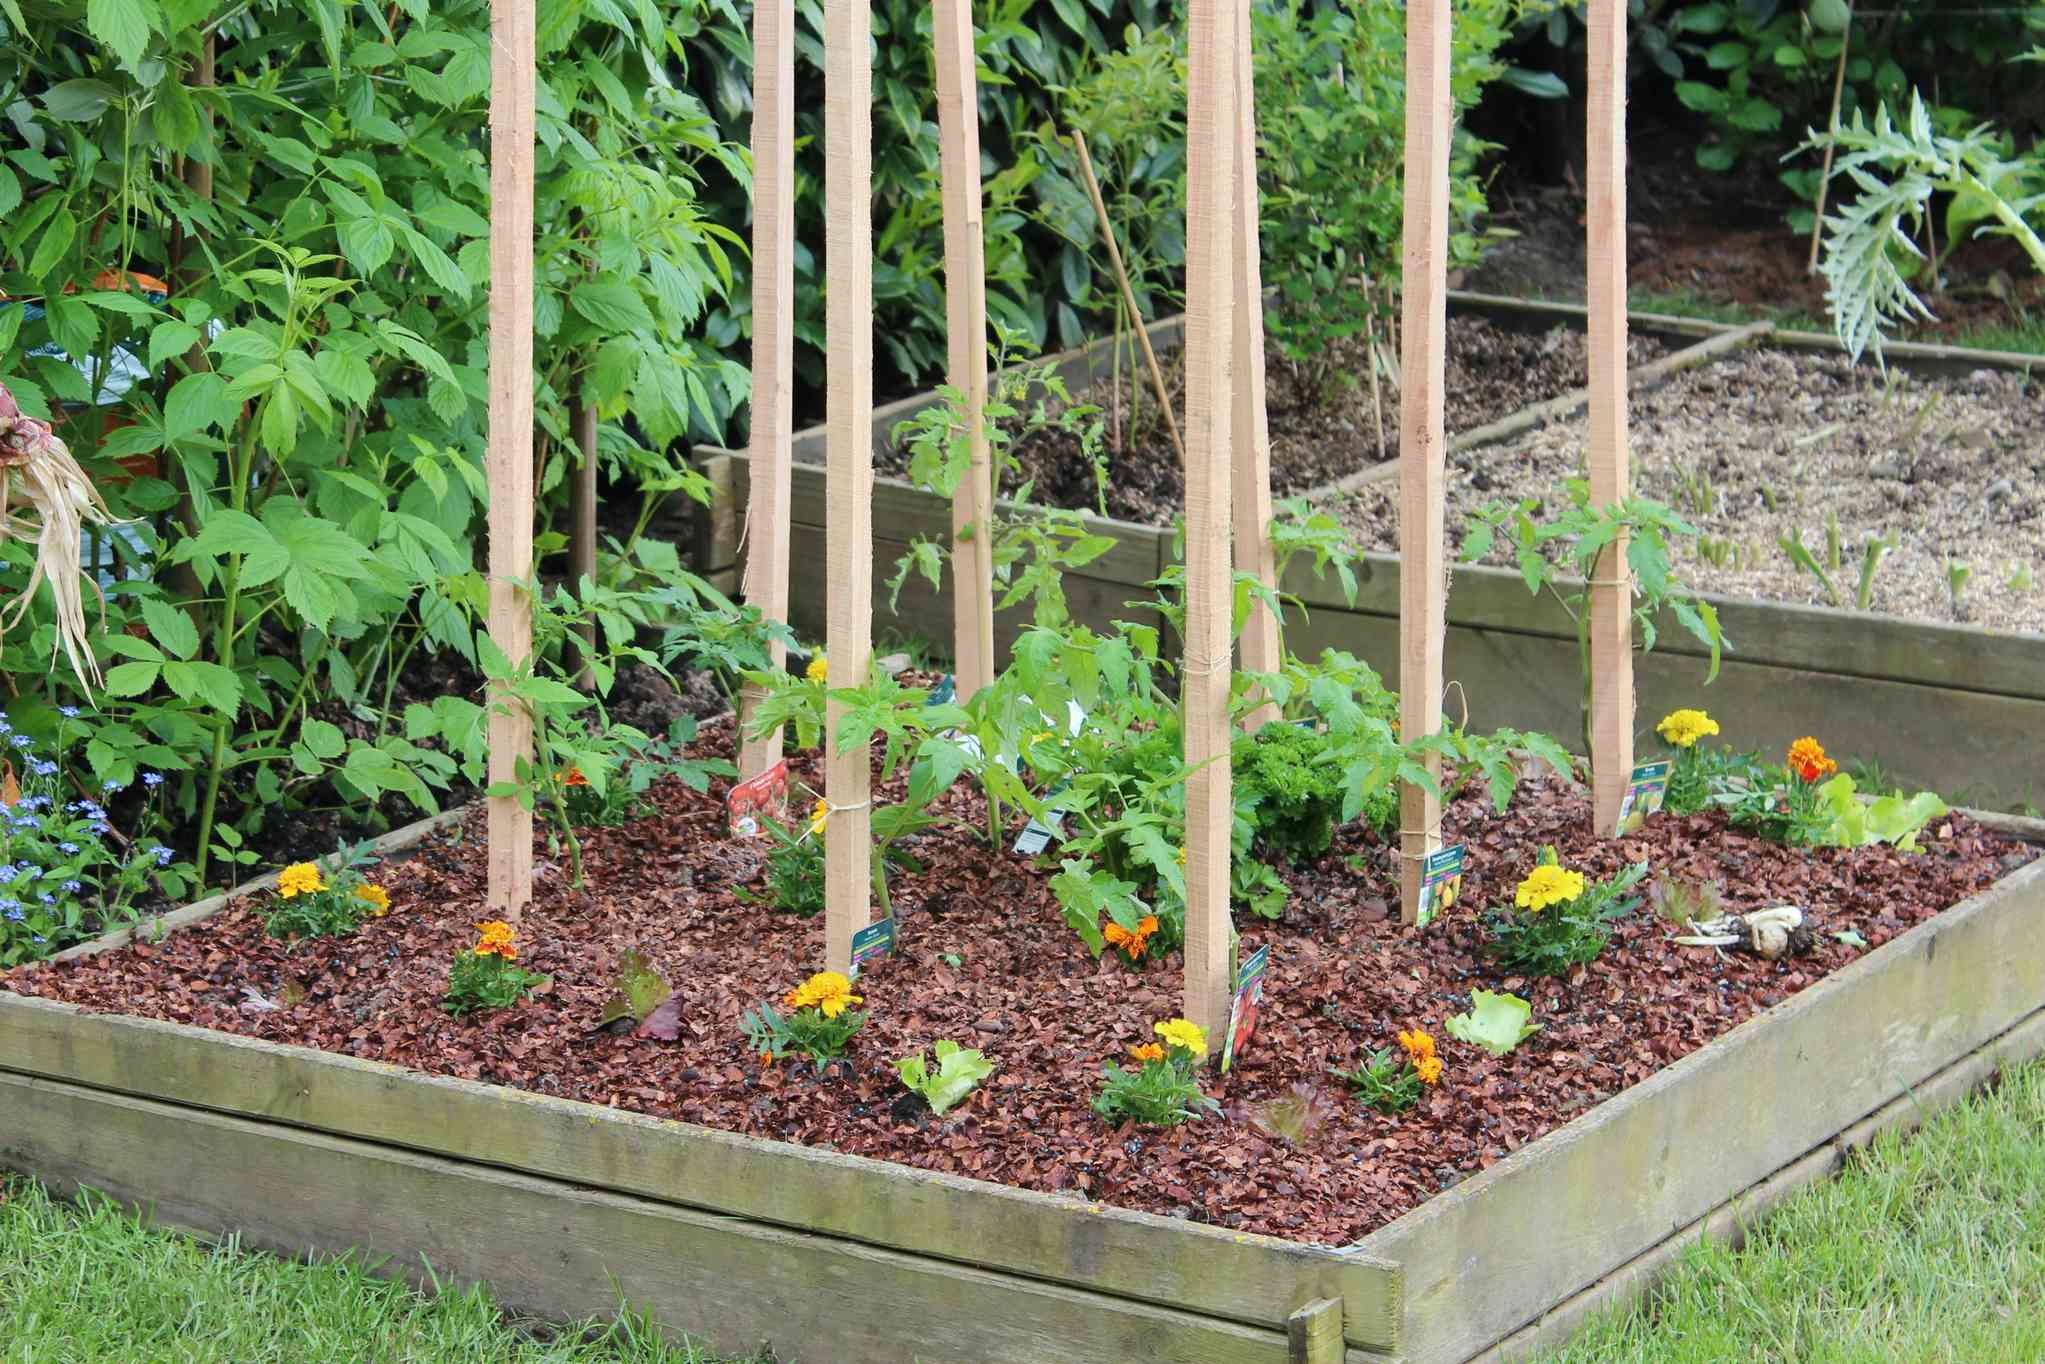 Marigolds planted around staked tomatoes in raised bed